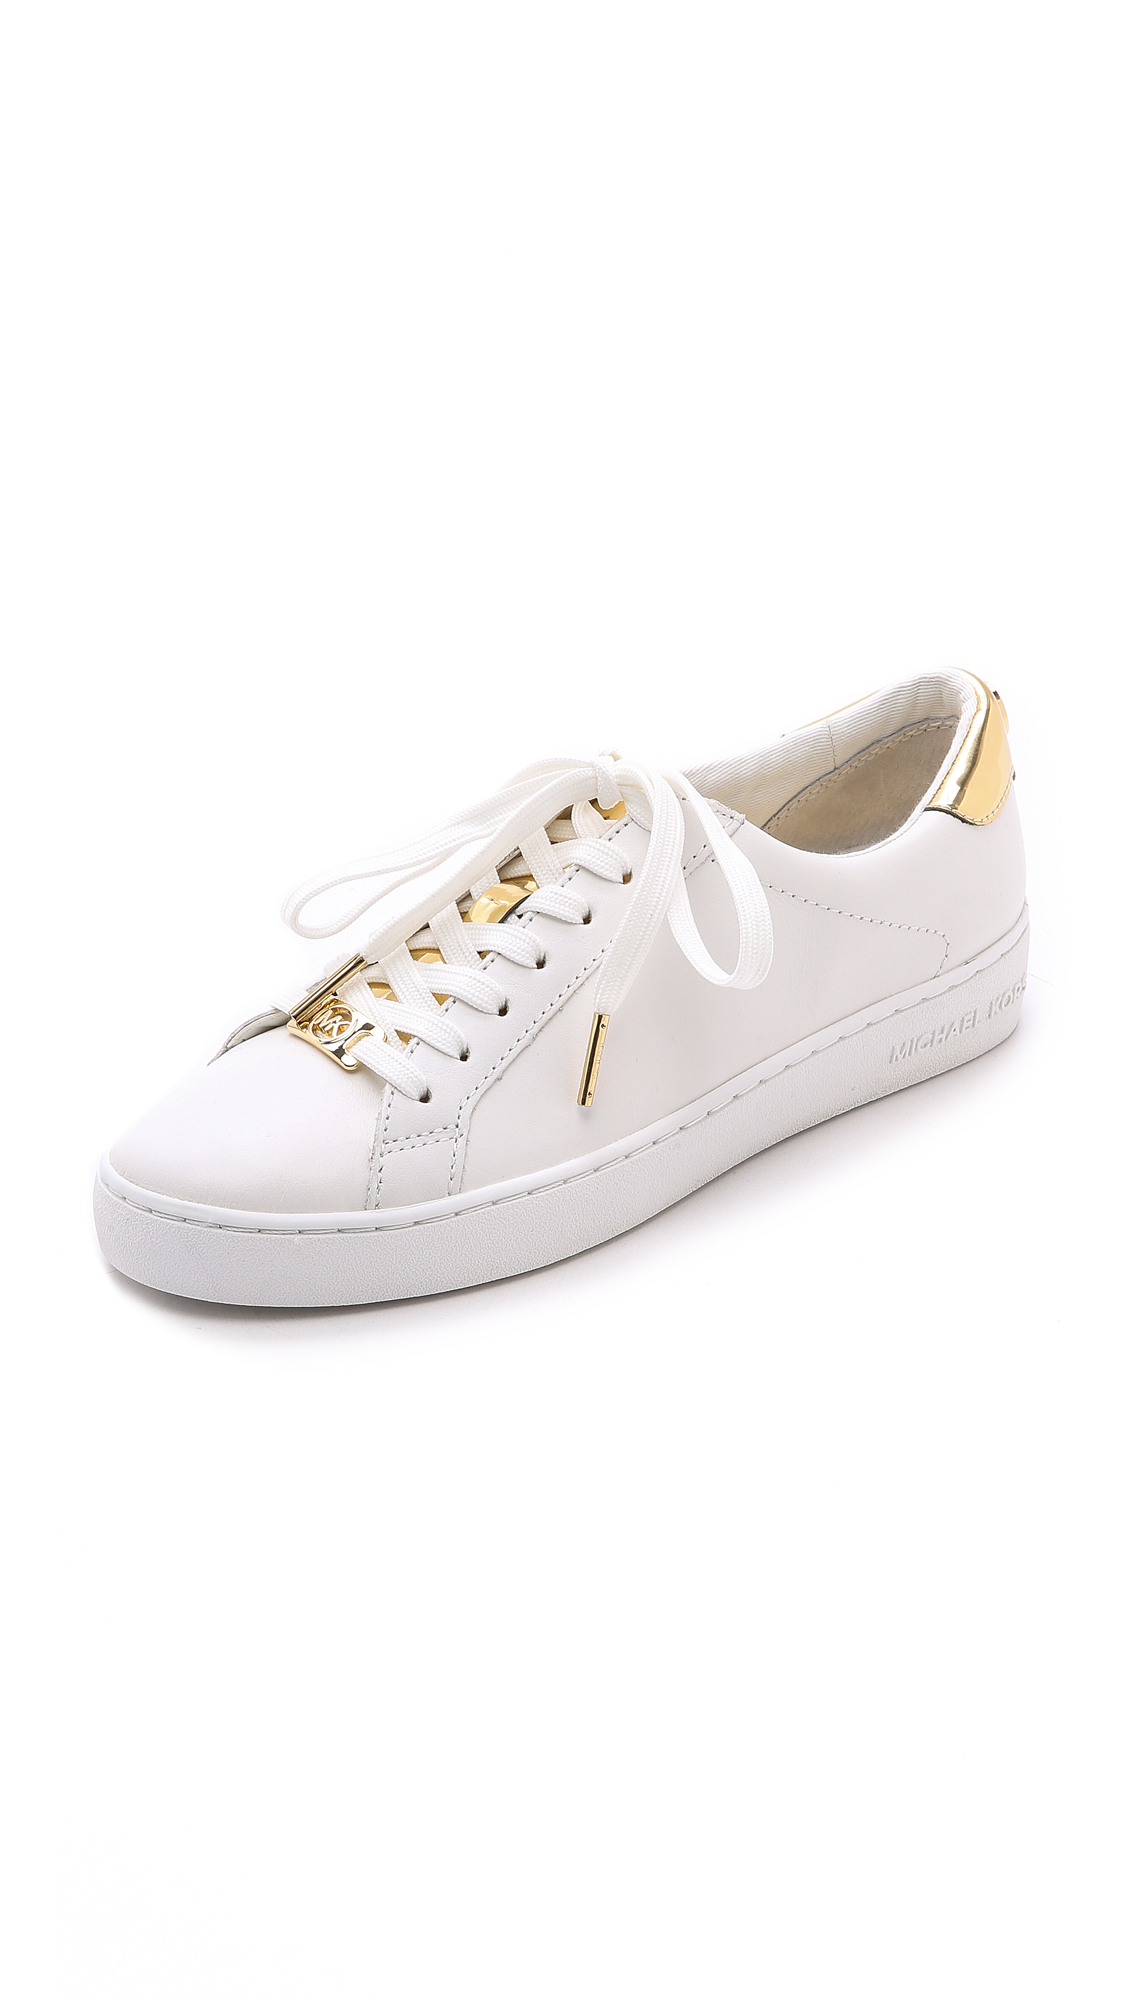 ec47e05a5df MICHAEL Michael Kors Irving Lace Up Sneakers - Optic Pale Gold in ...